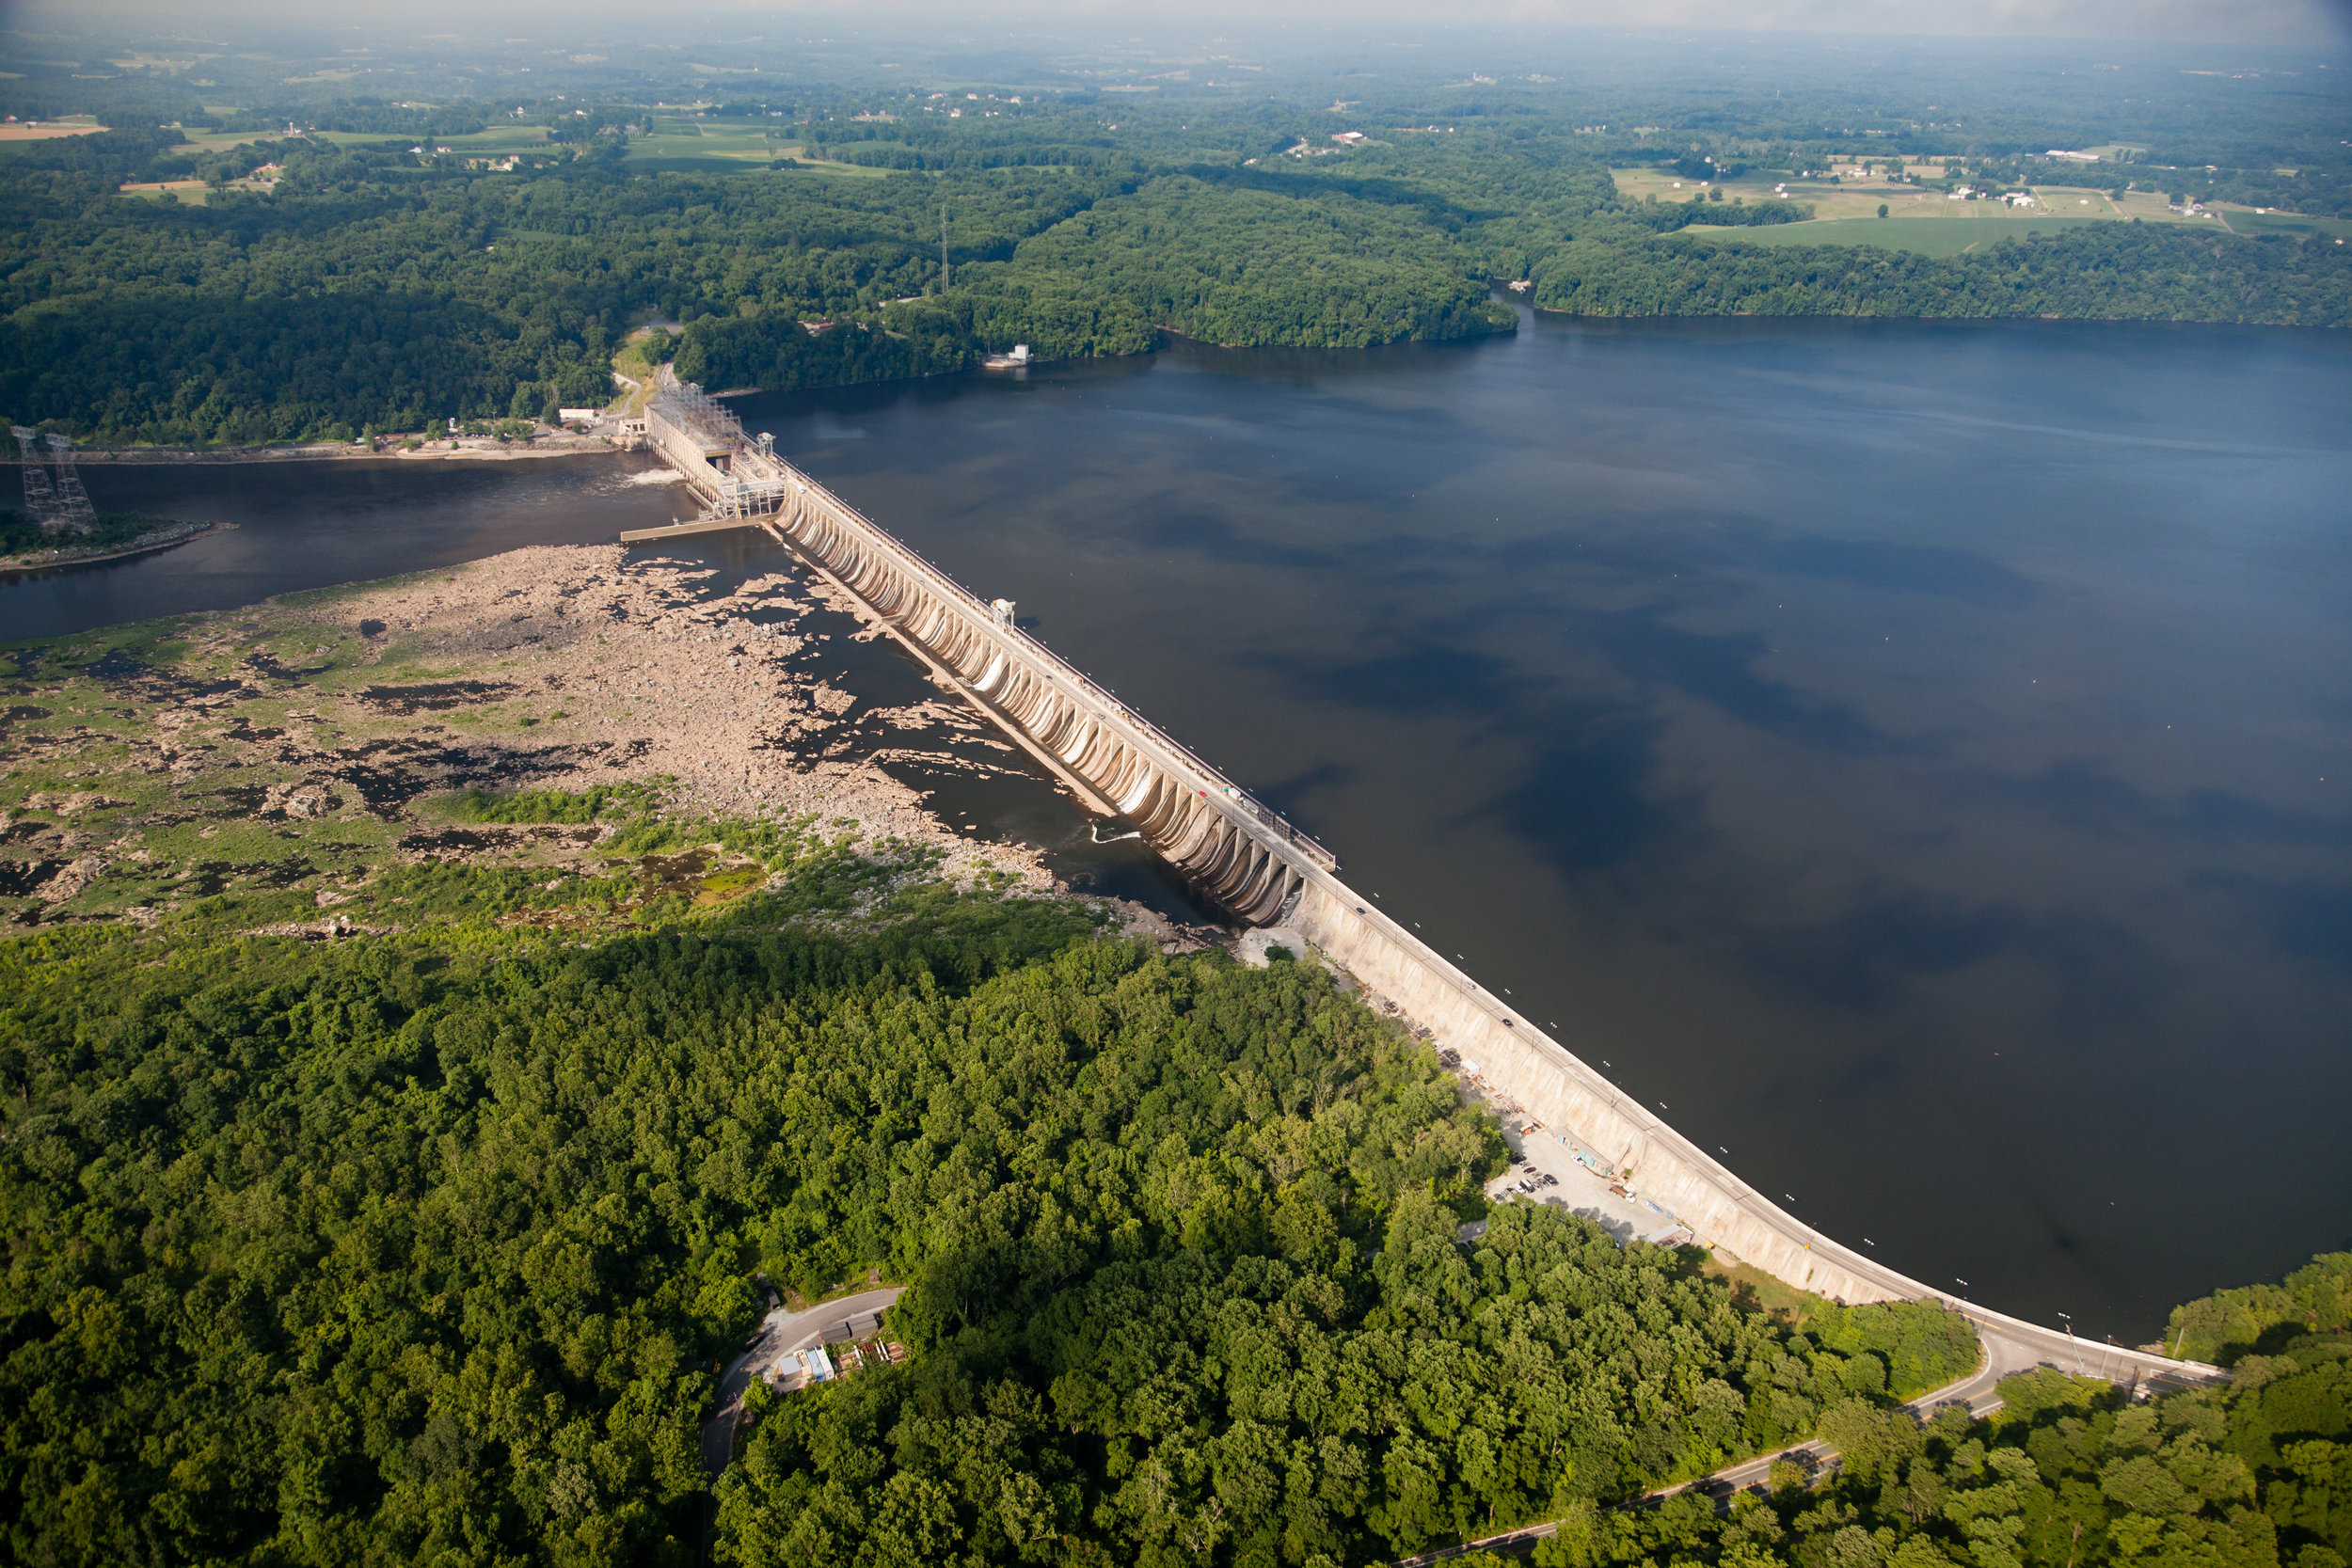 The Susquehanna River flows south past Conowingo Dam, toward Havre de Grace, Md., on June 27, 2016. Photo Credit: Chesapeake Bay Program